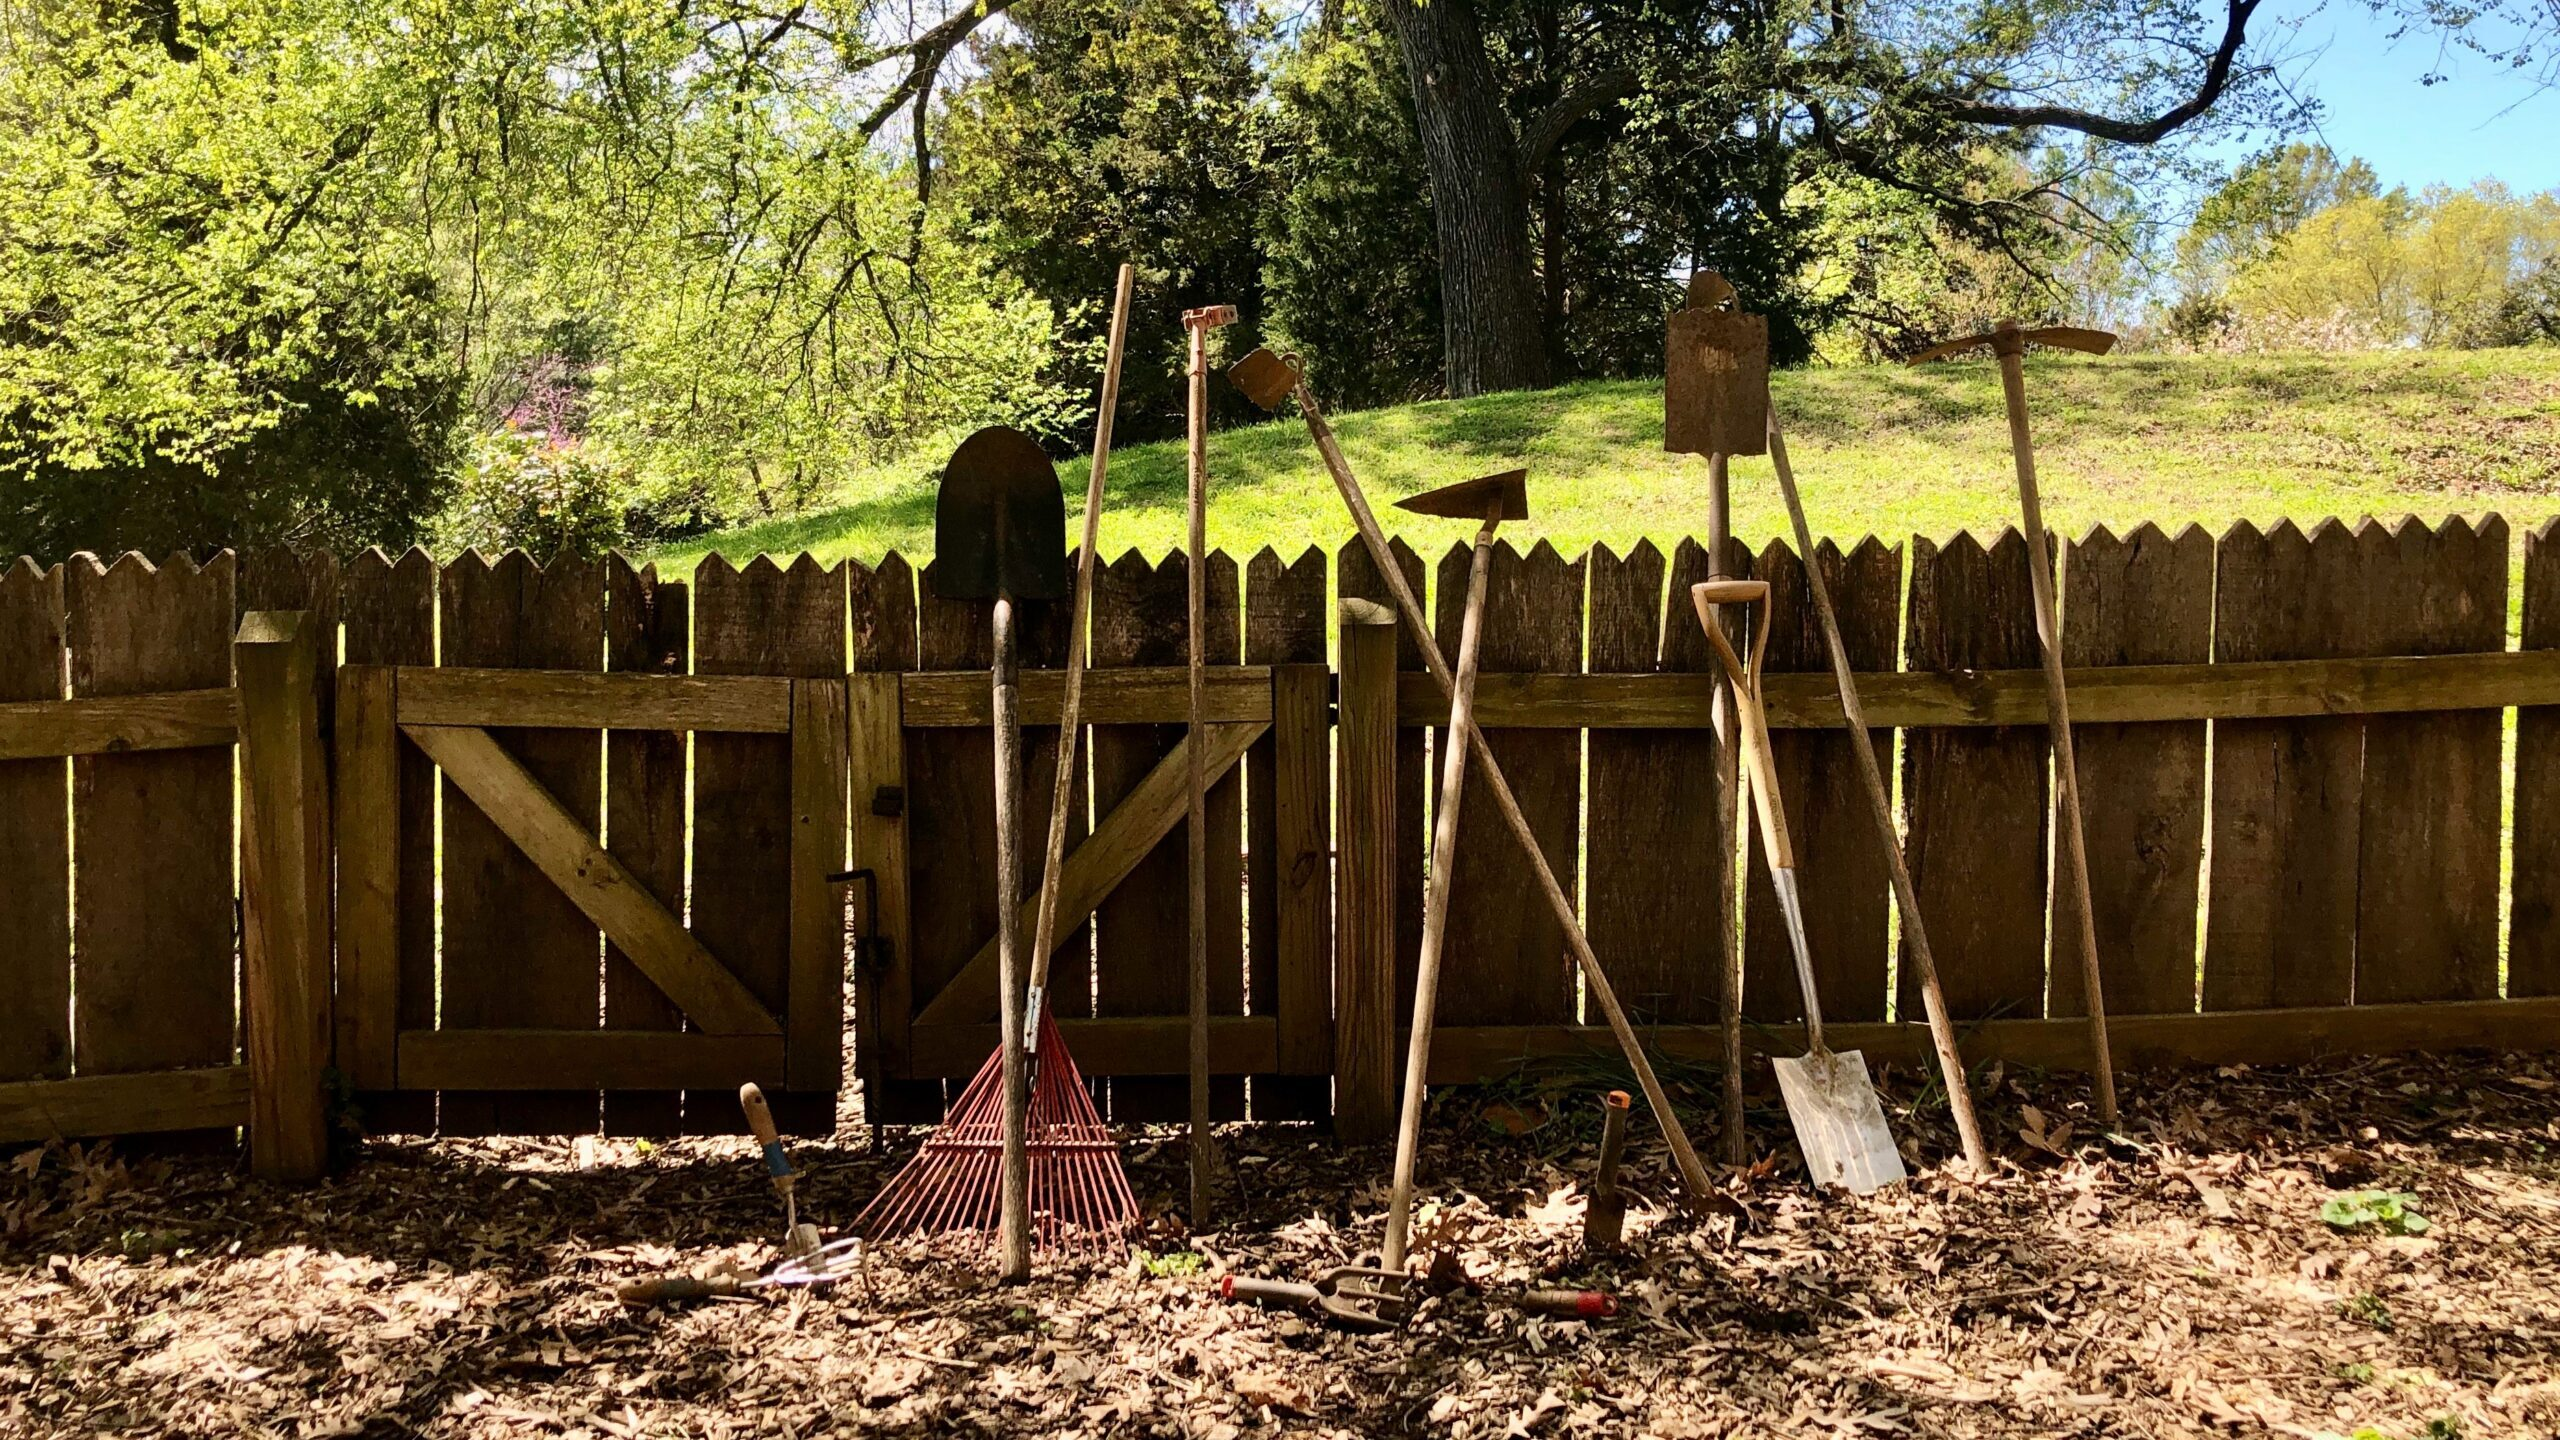 Gardening tools leaned against a wooden fence